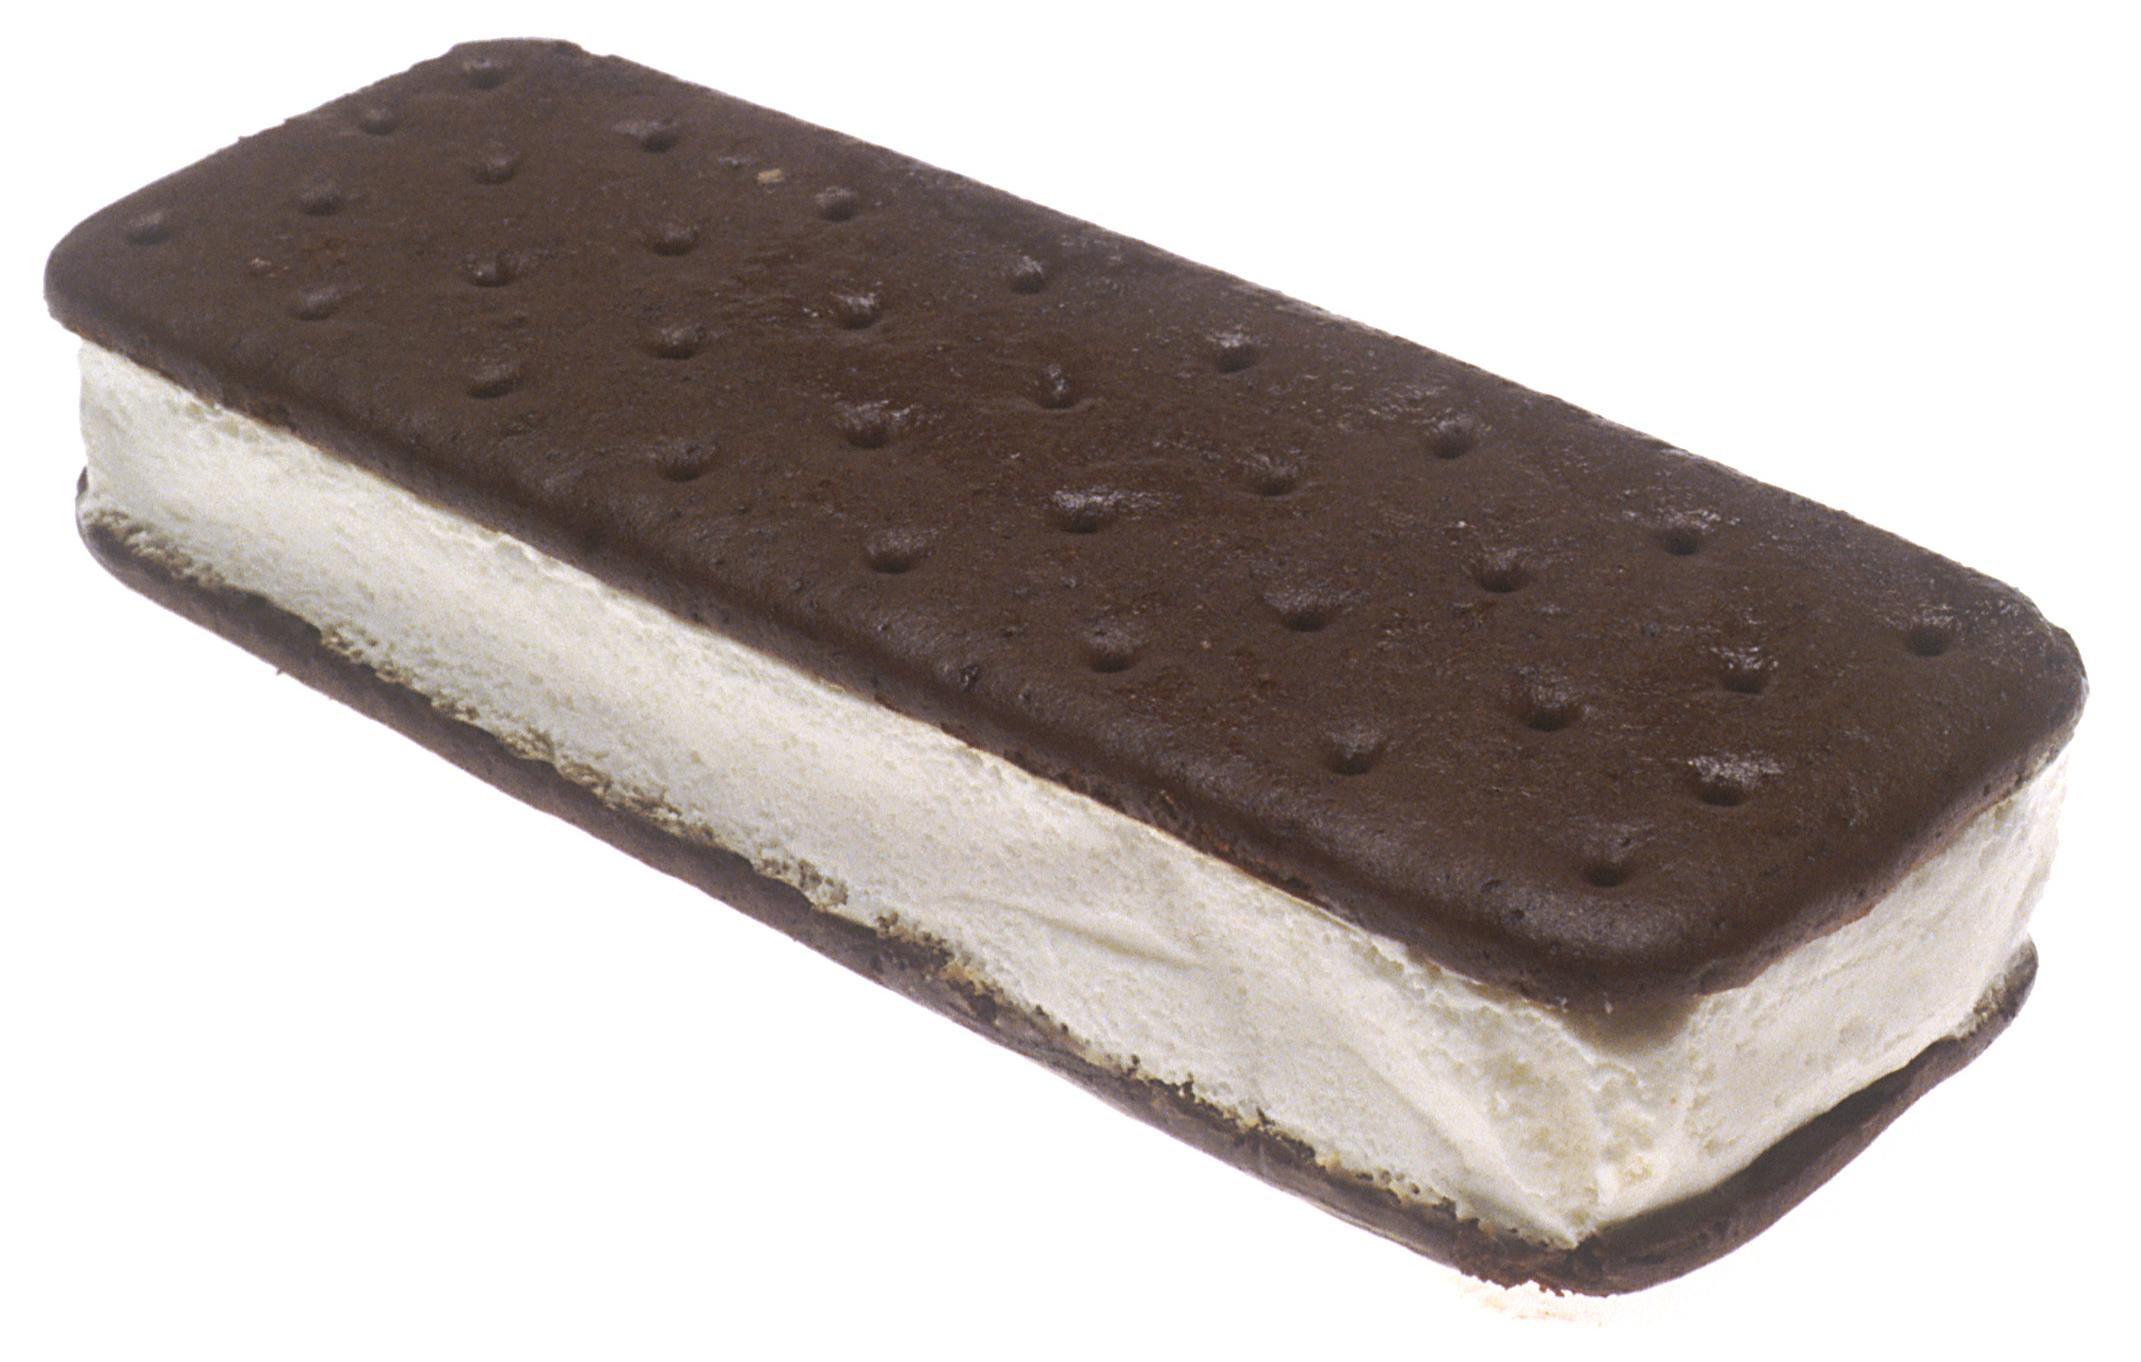 Ice cream sandwiches! - icecream icecreamsandwich | Ask MetaFilter